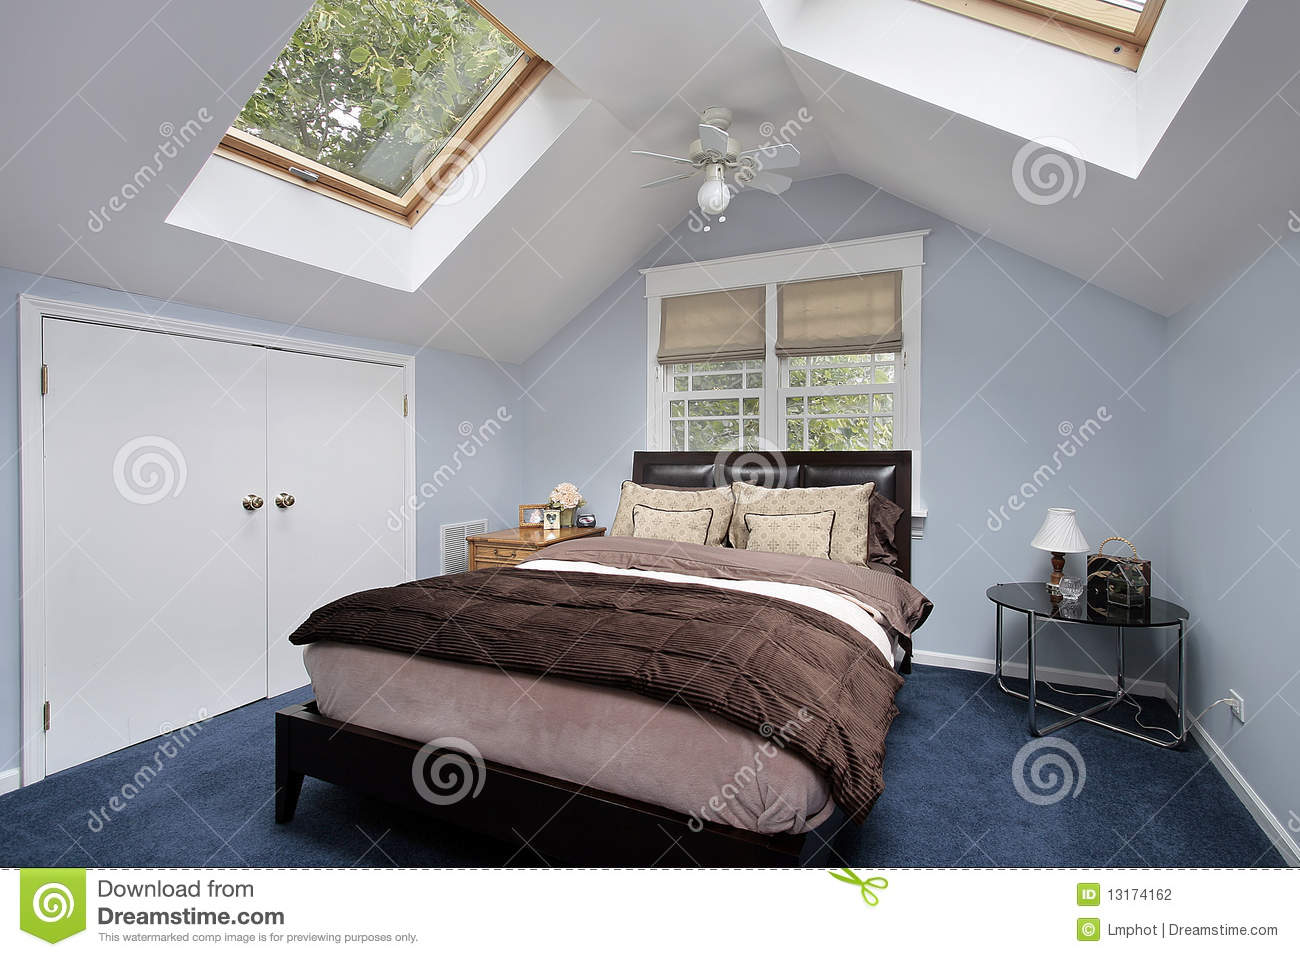 Lucernario En Ingles Master Bedroom With Skylights Stock Photo Image Of